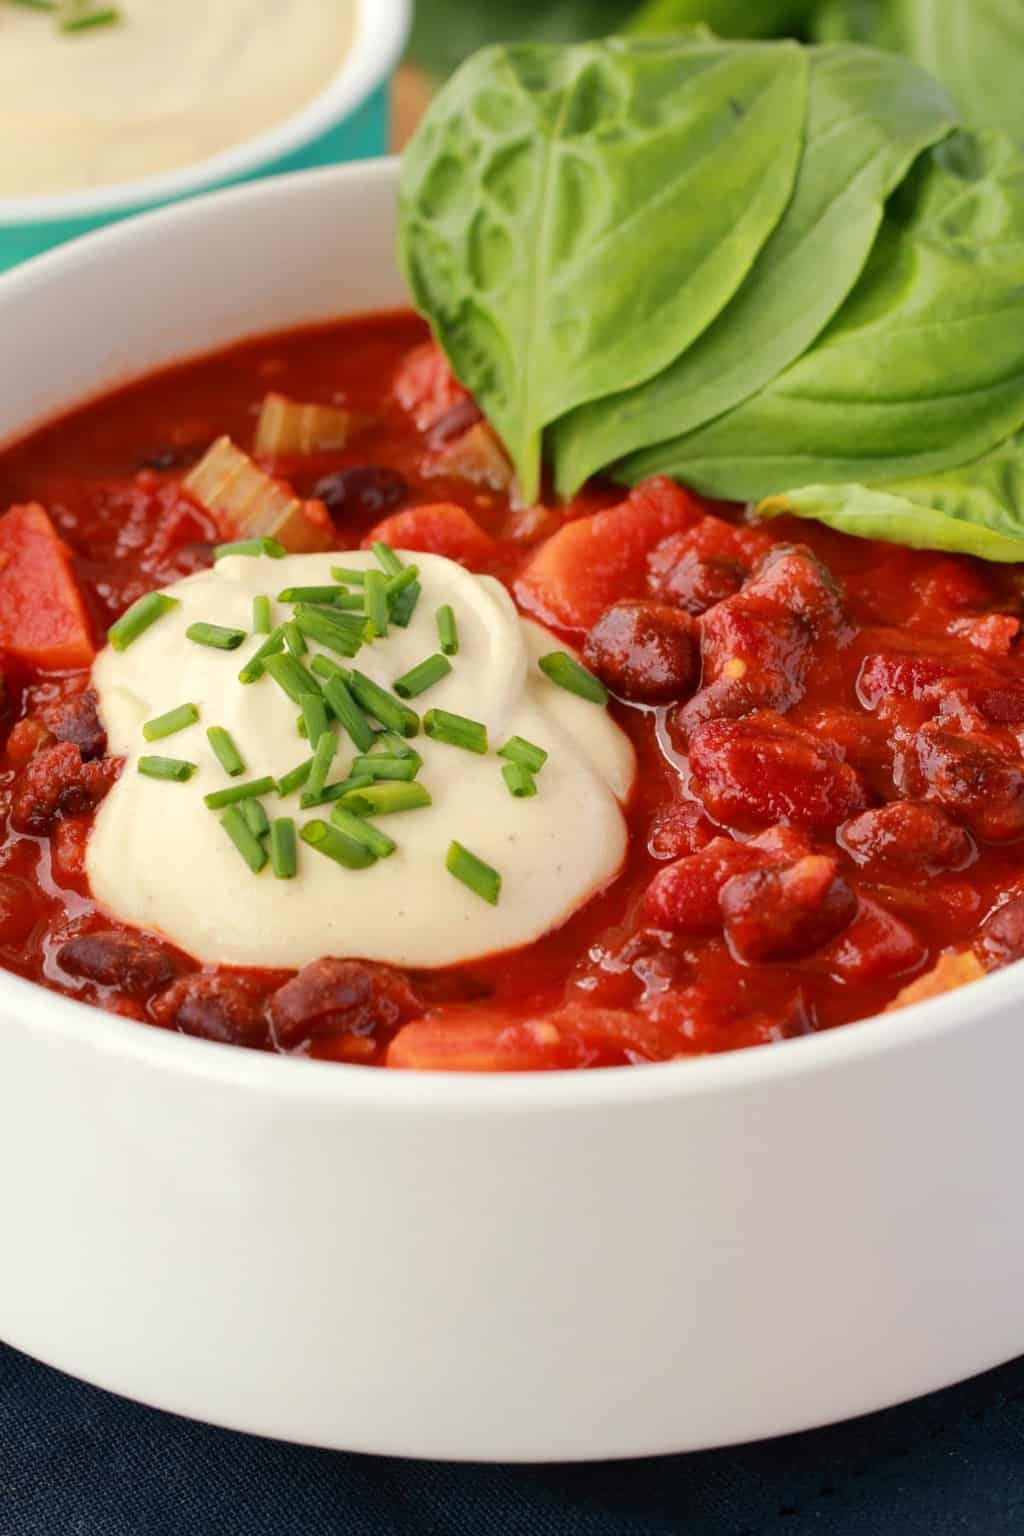 Vegan Chili in a white bowl with a dollop of cashew cream and chopped chives on top and fresh basil leaves on the side.